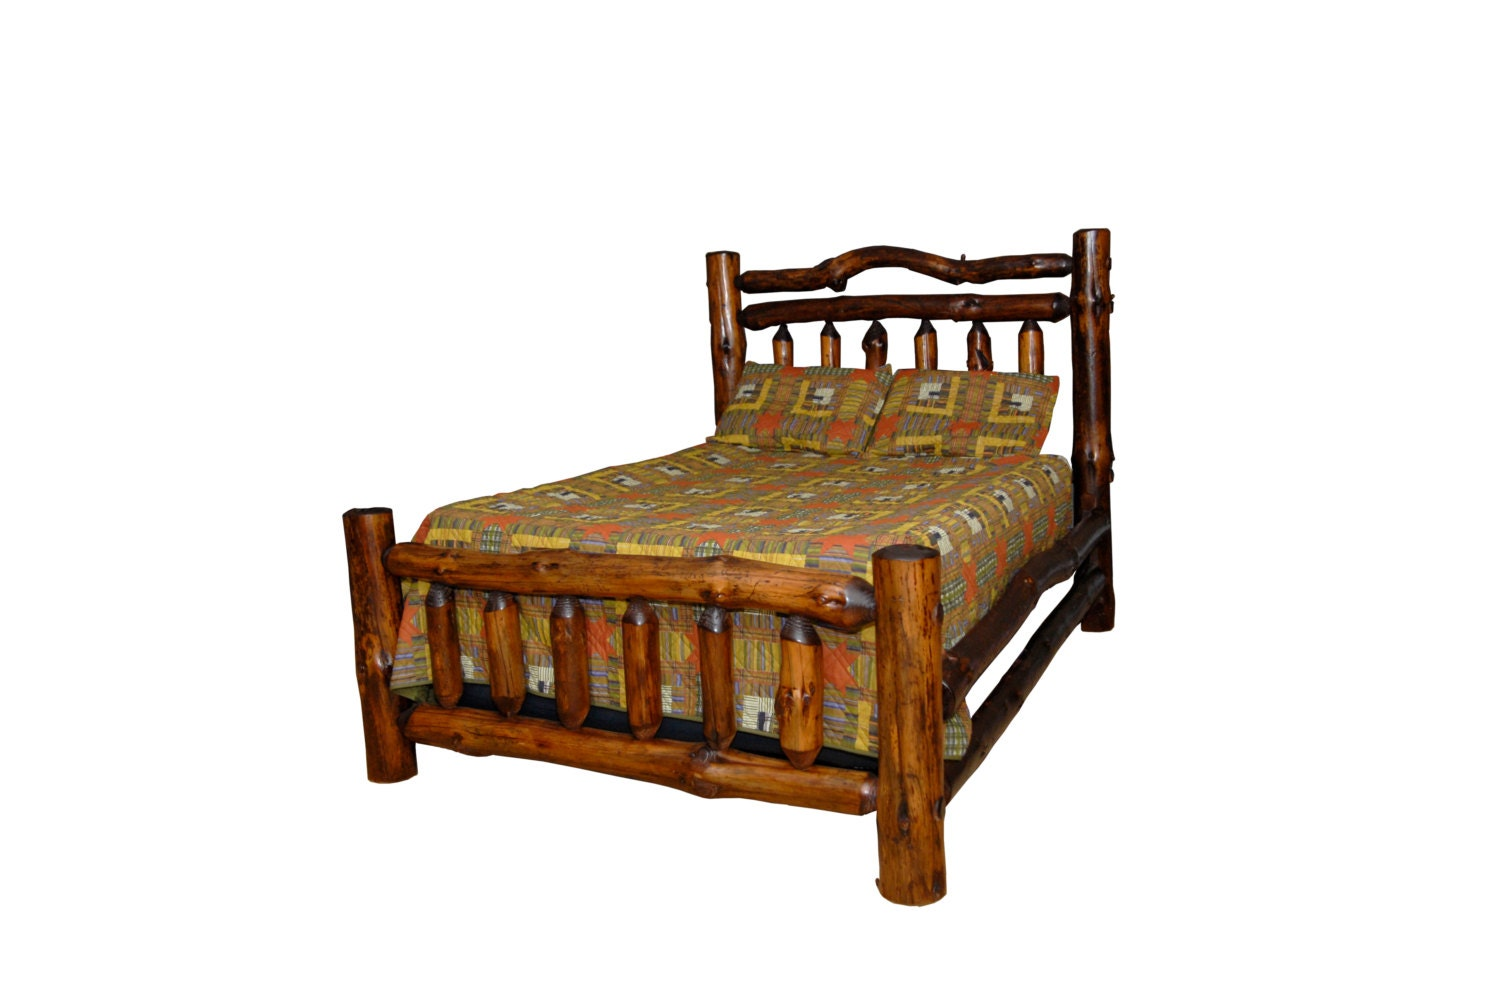 Rustic Pine Log FULL SIZE Double Rail Complete Bed Frame